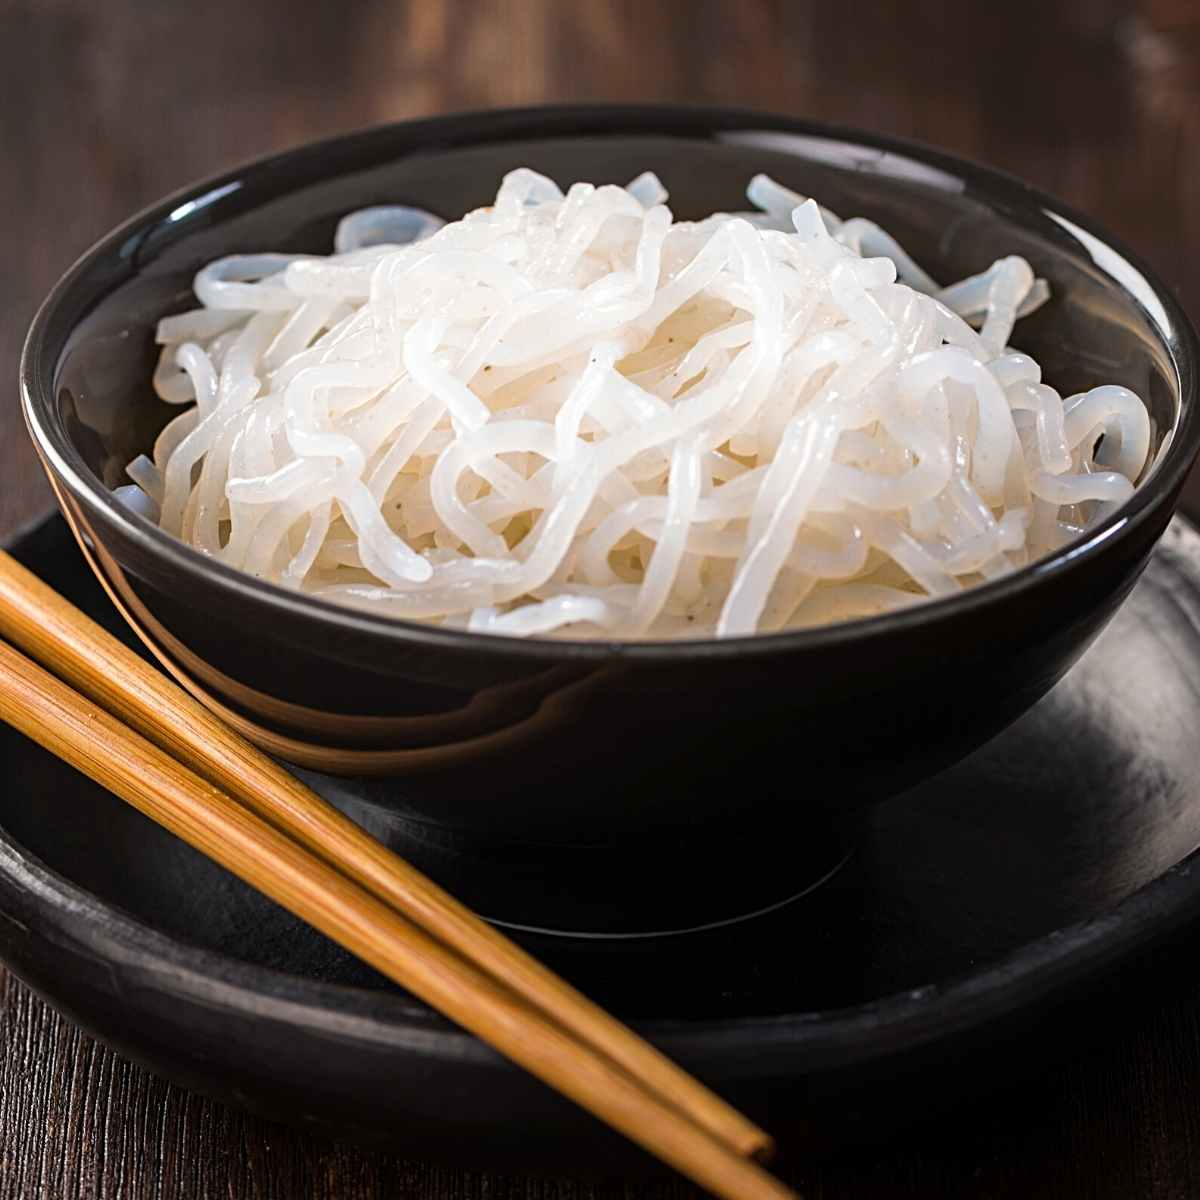 asian noodles in a bowl - Shirataki: The True Keto Approved Asian Noodle